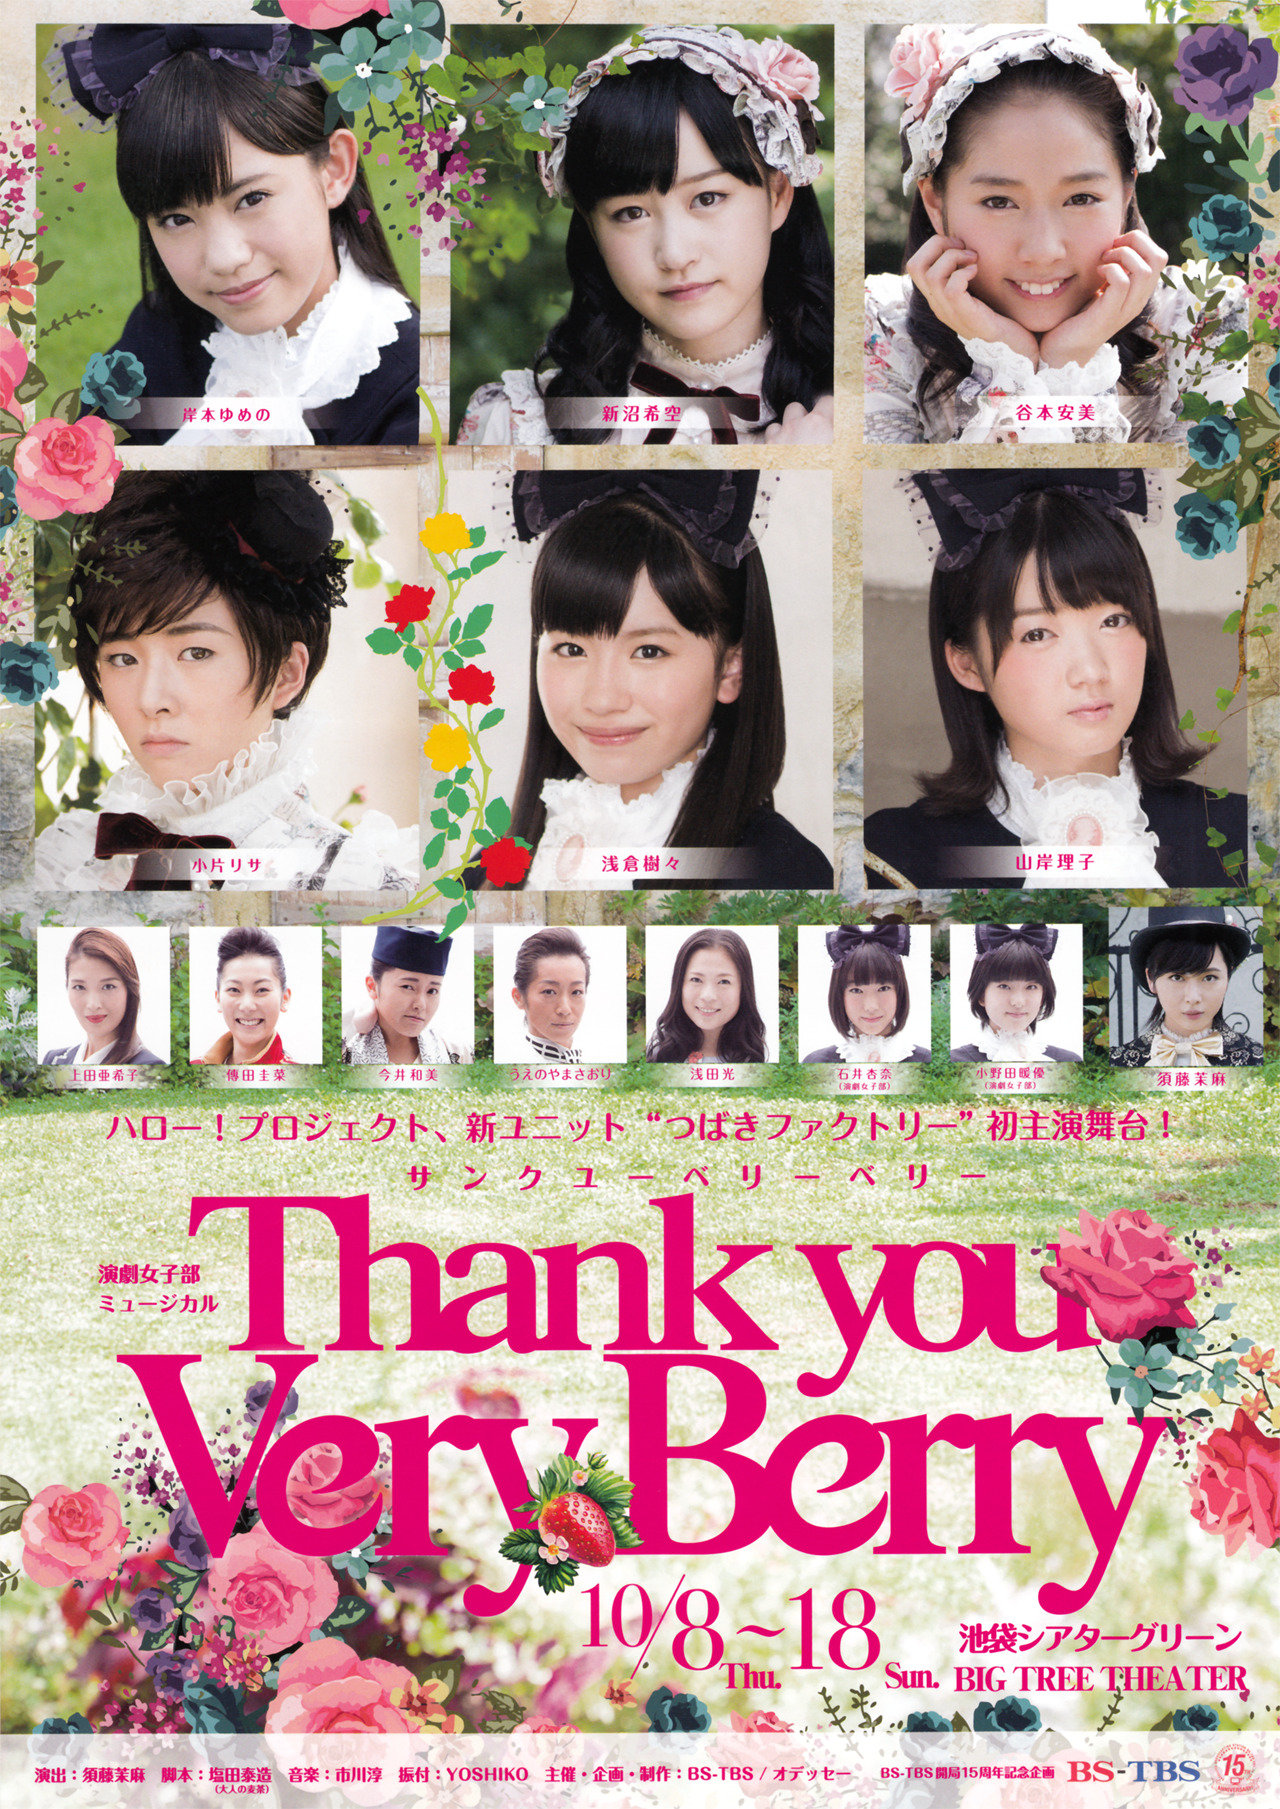 Thank You Very Berry (musical)